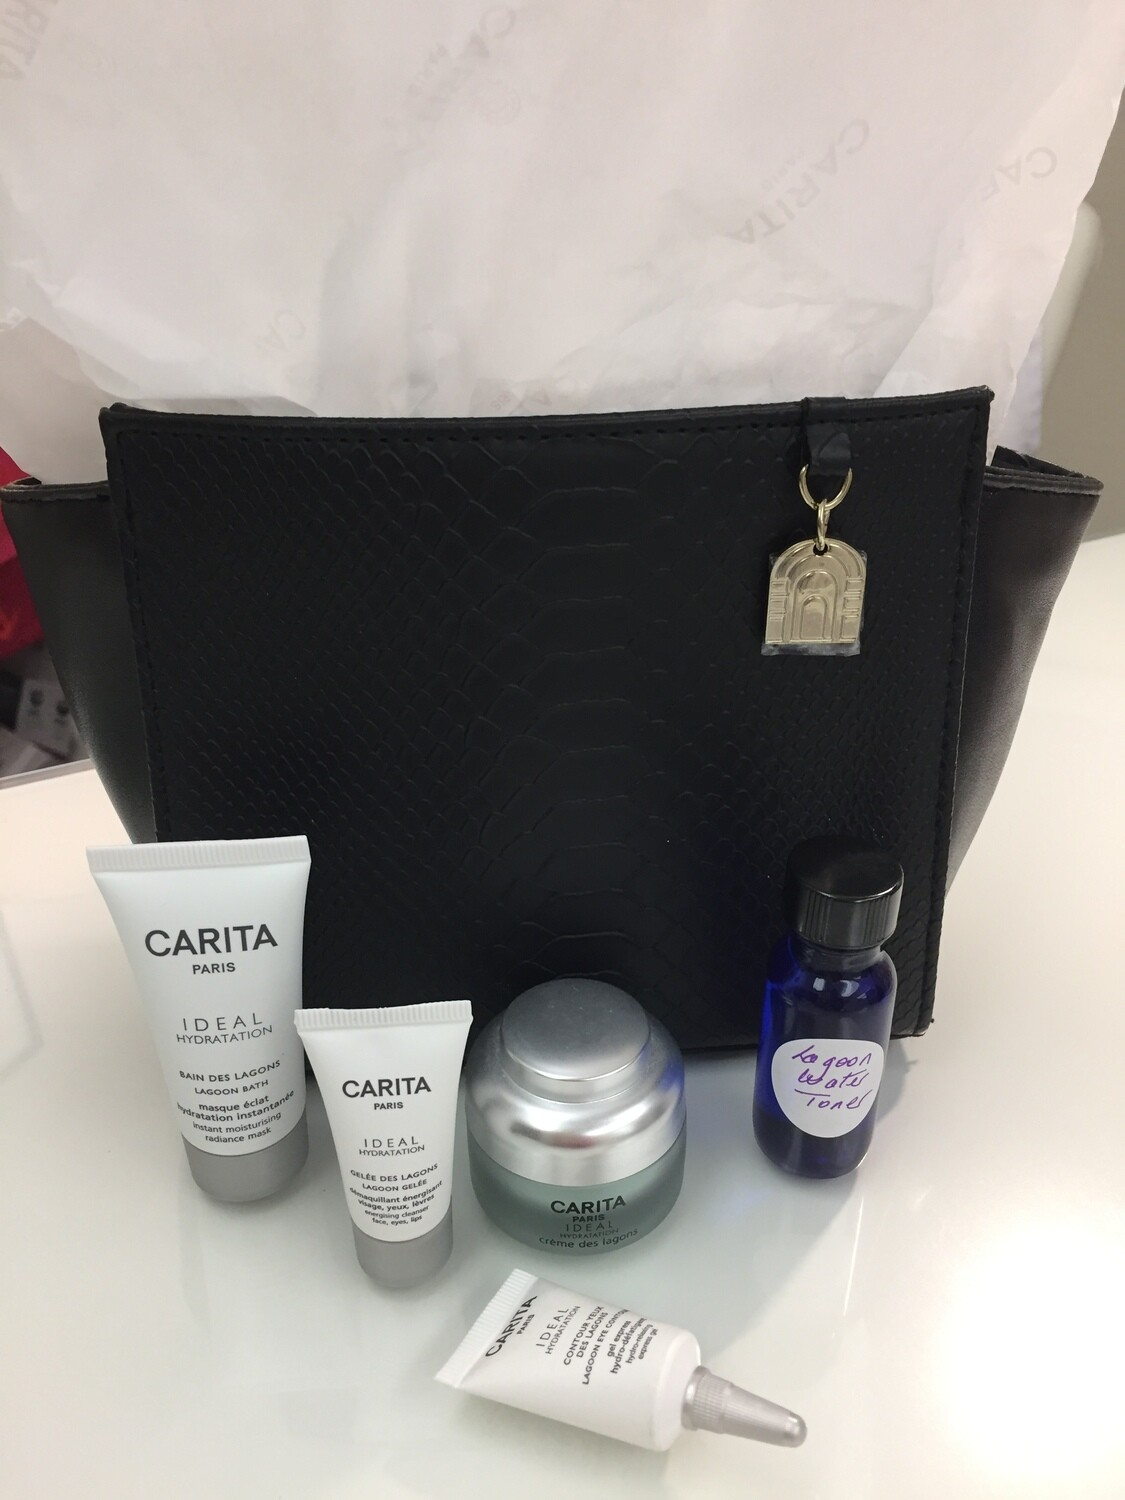 AT HOME CARITA LAGOON SPA KIT